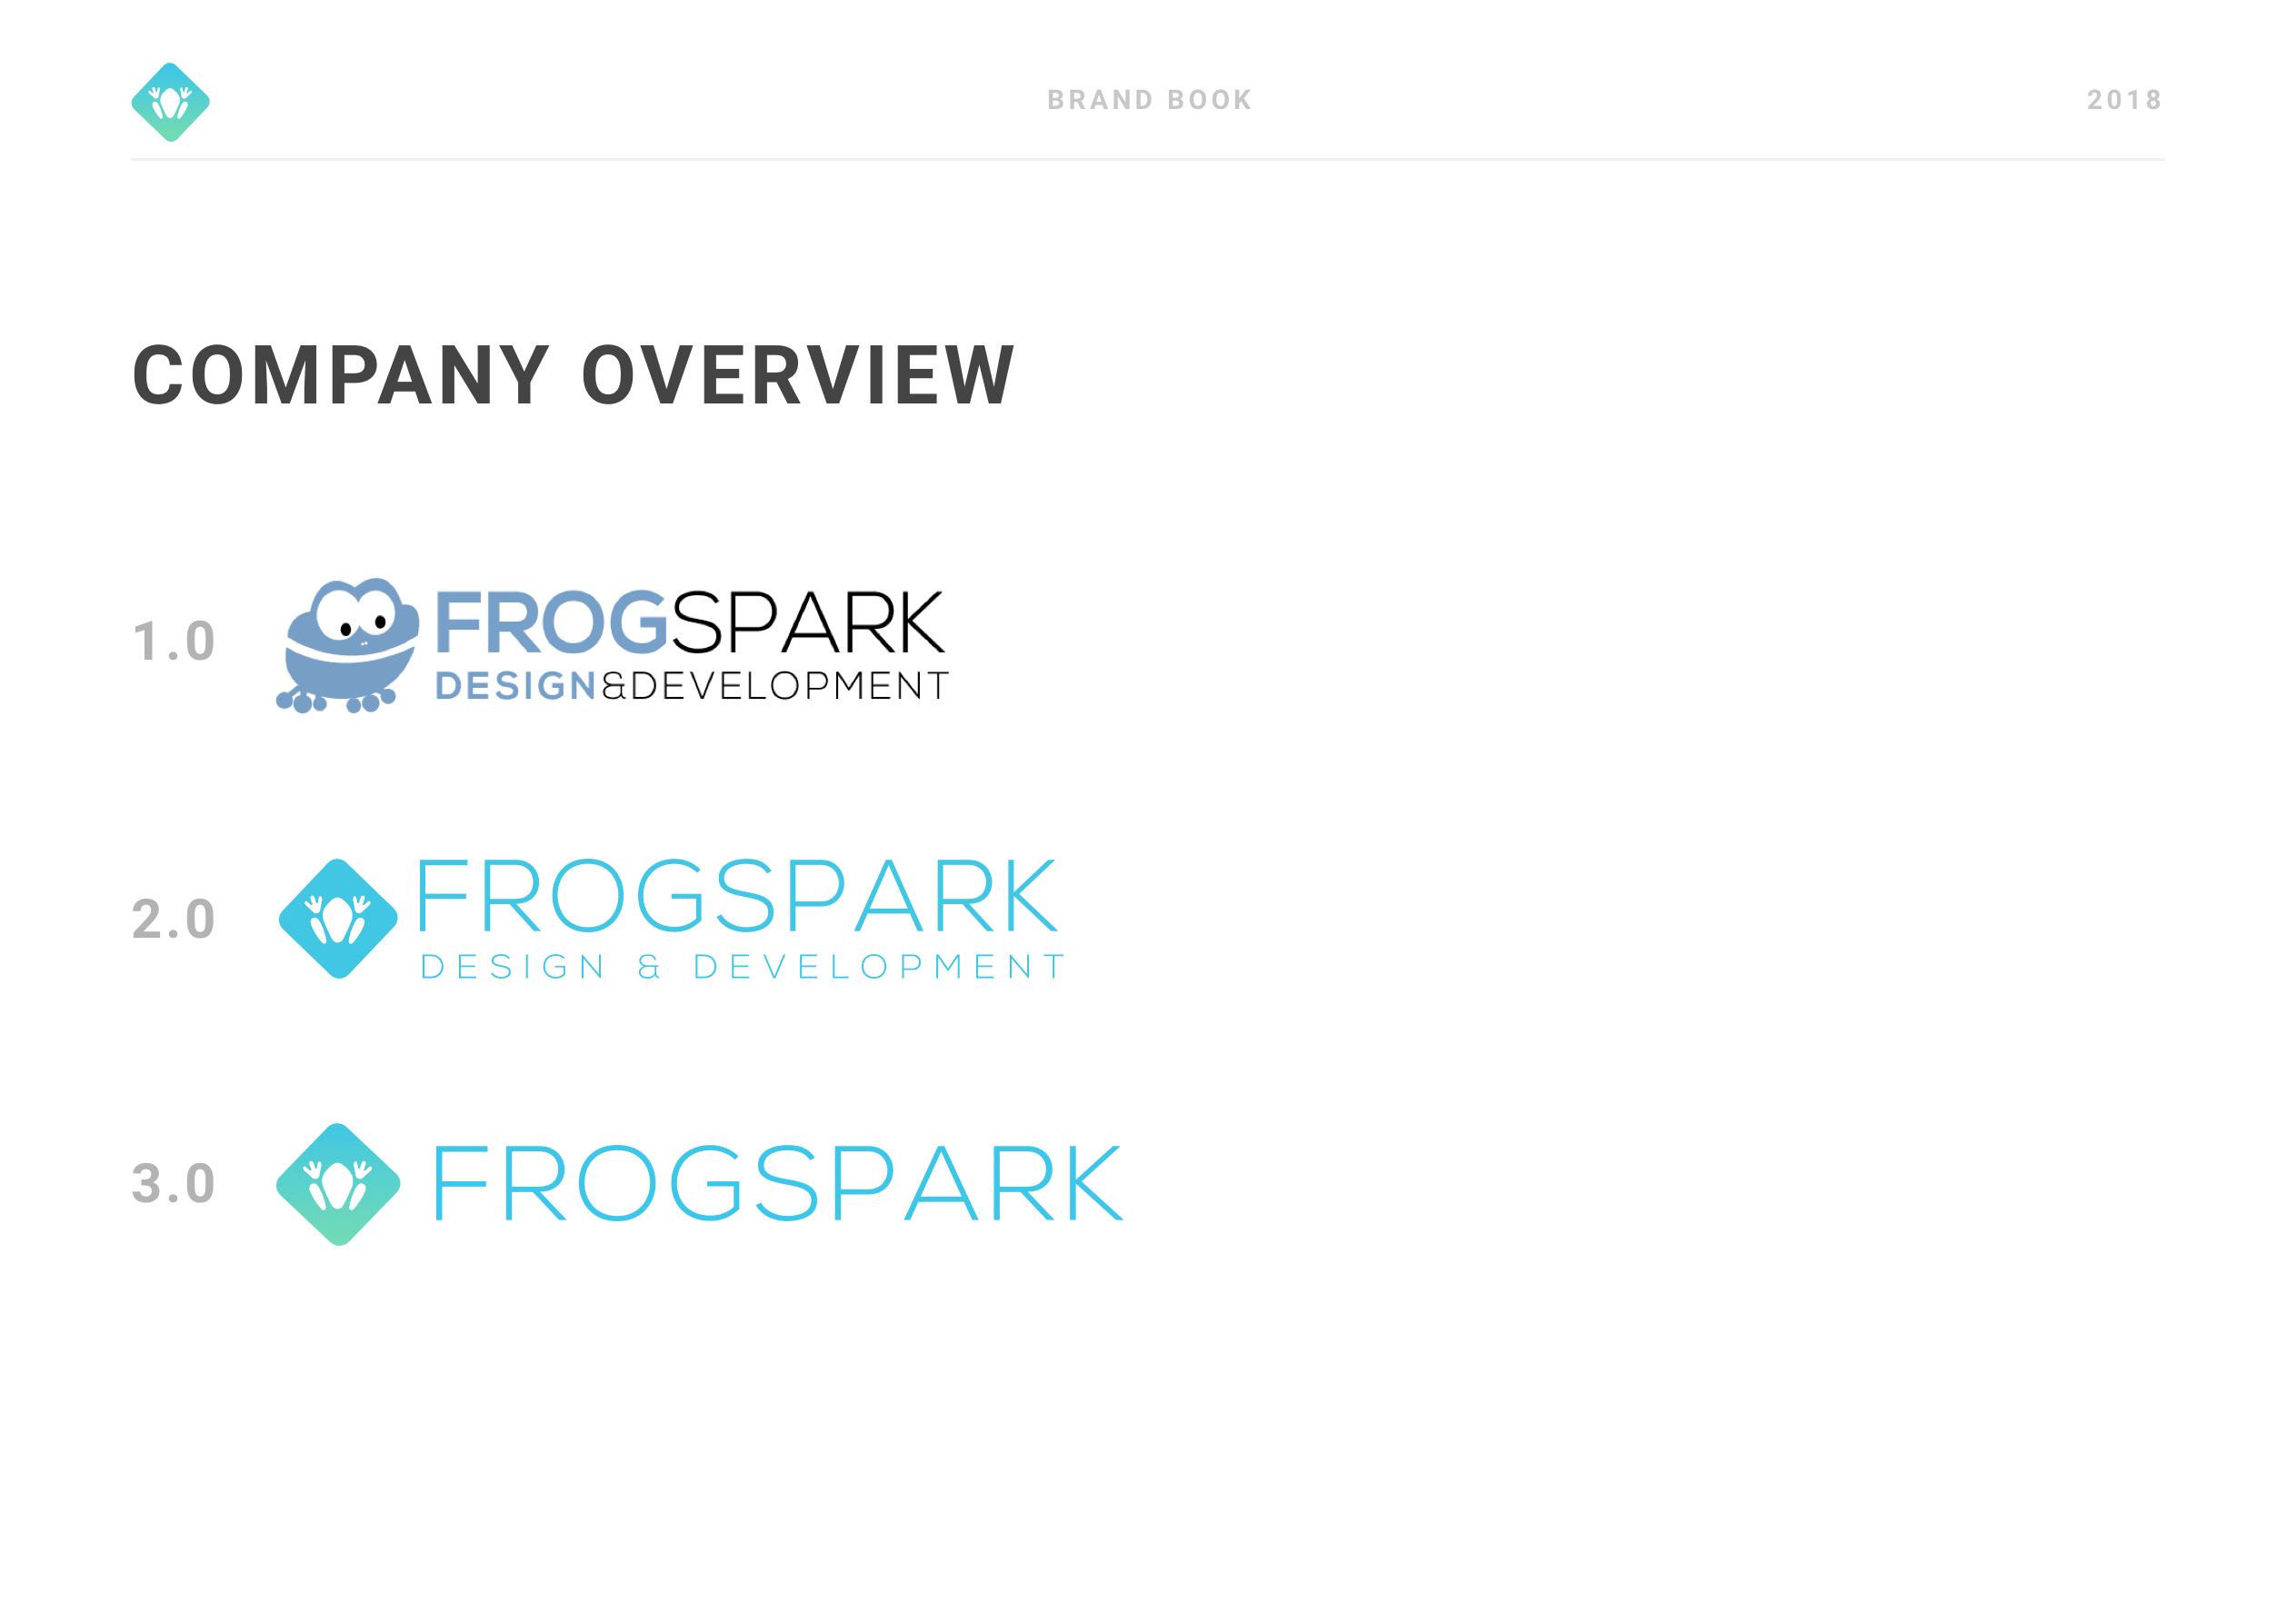 Frogspark Evolution